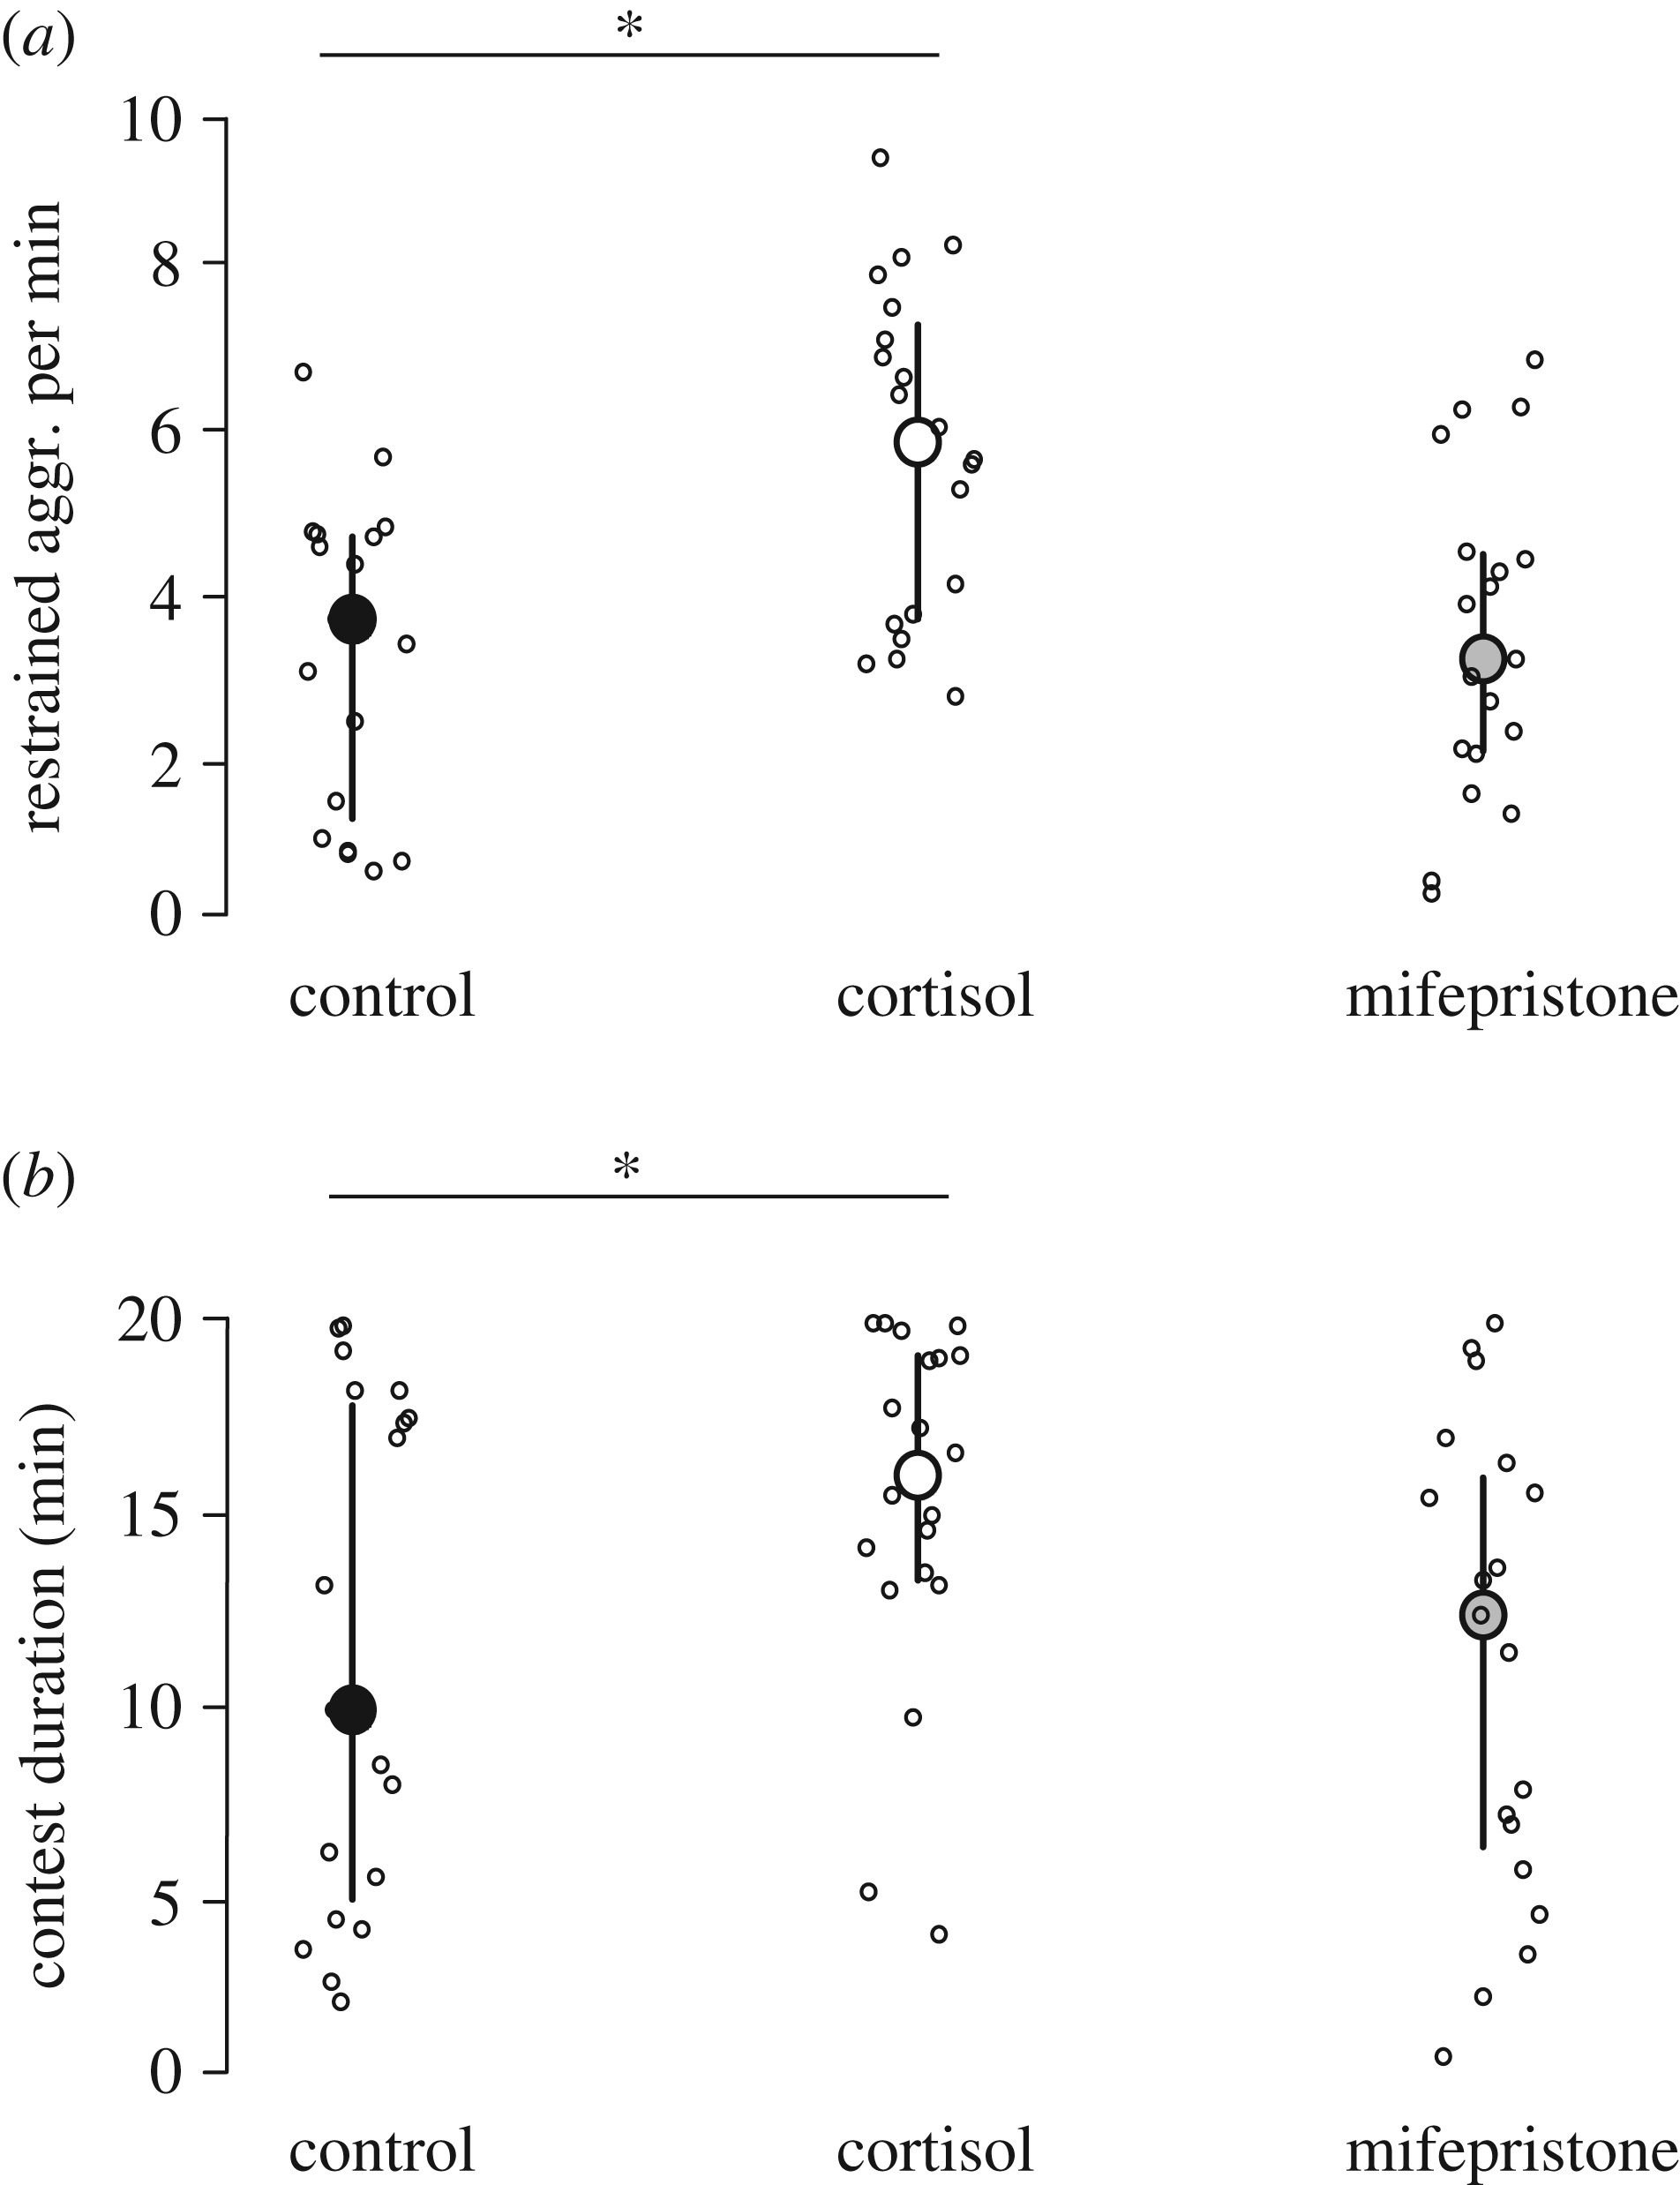 early life manipulation of cortisol and its receptor alters stress